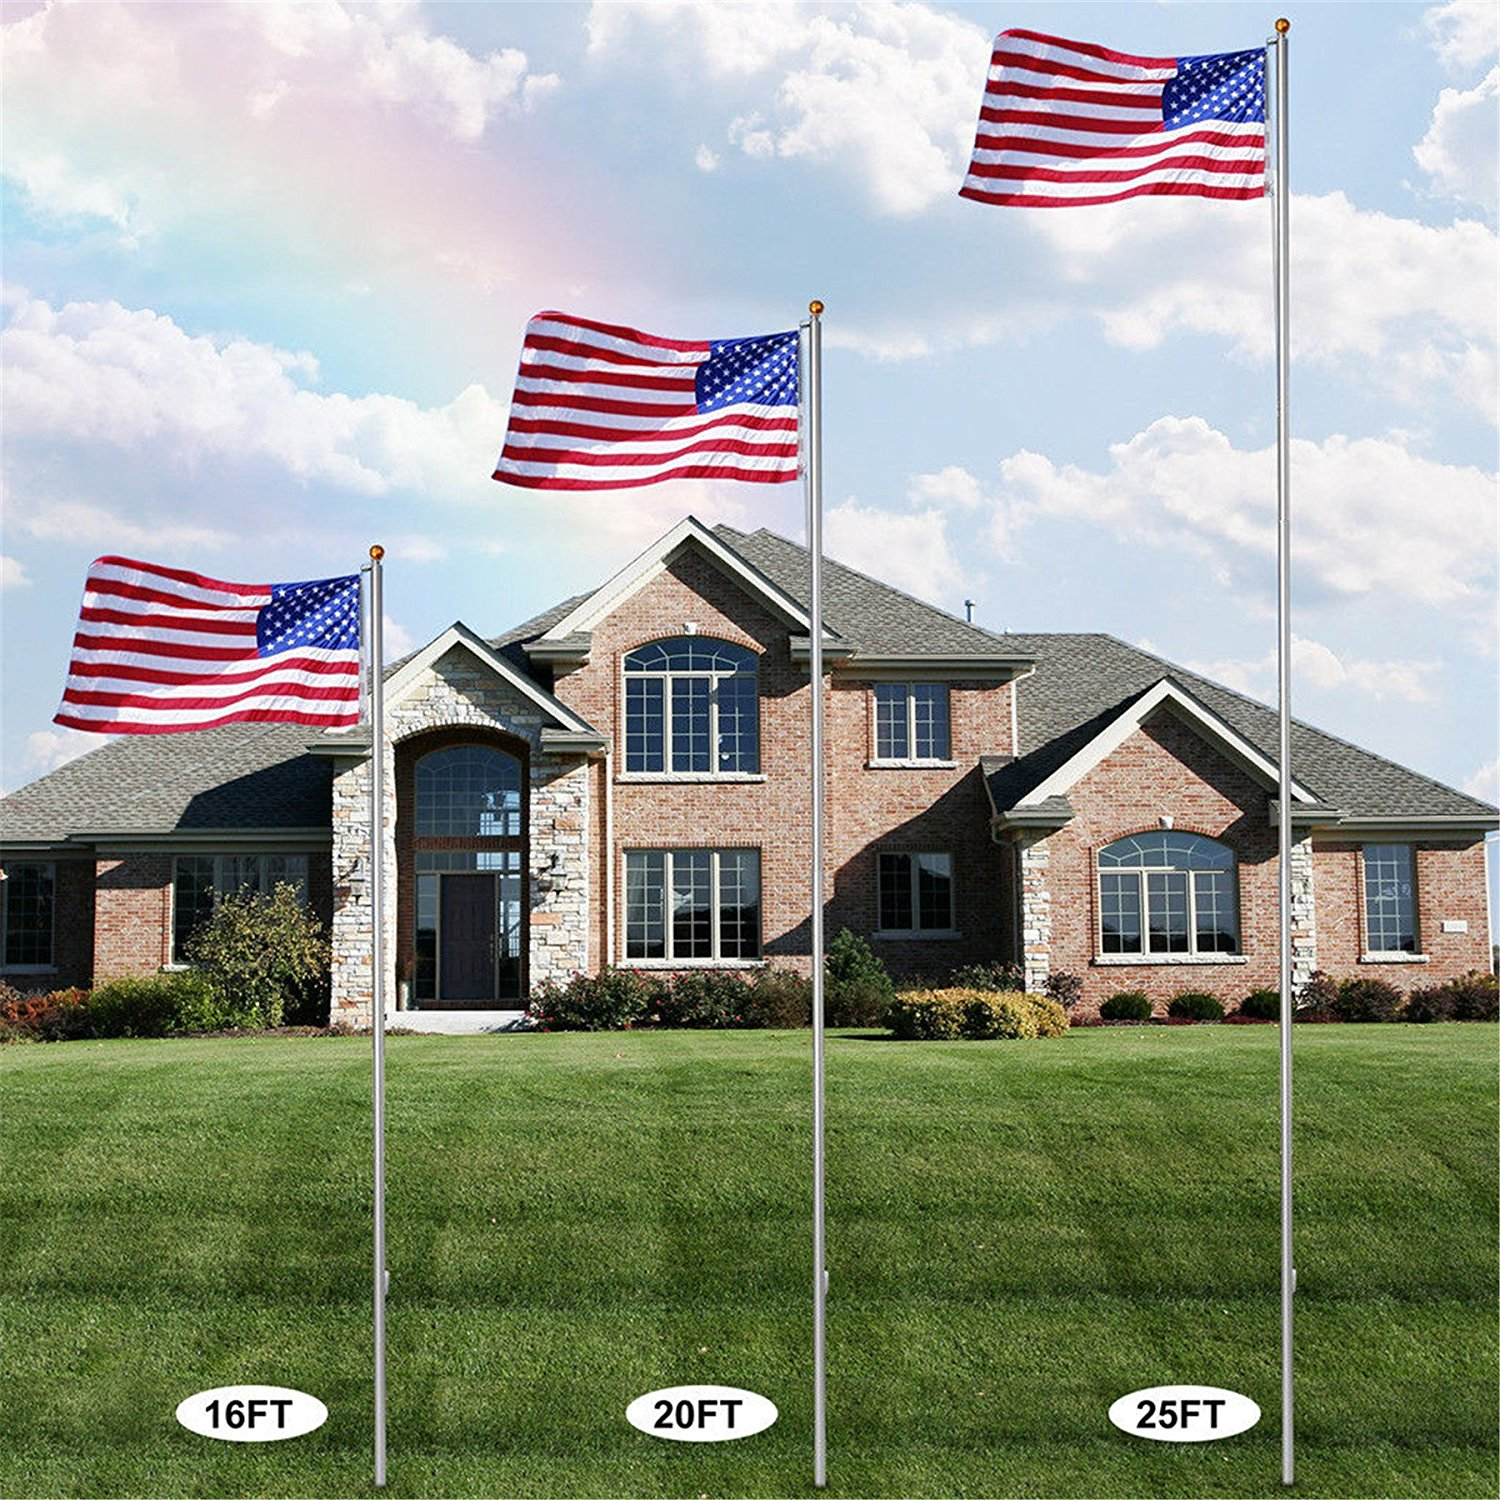 Cheap 30 Ft Flag Pole, find 30 Ft Flag Pole deals on line at